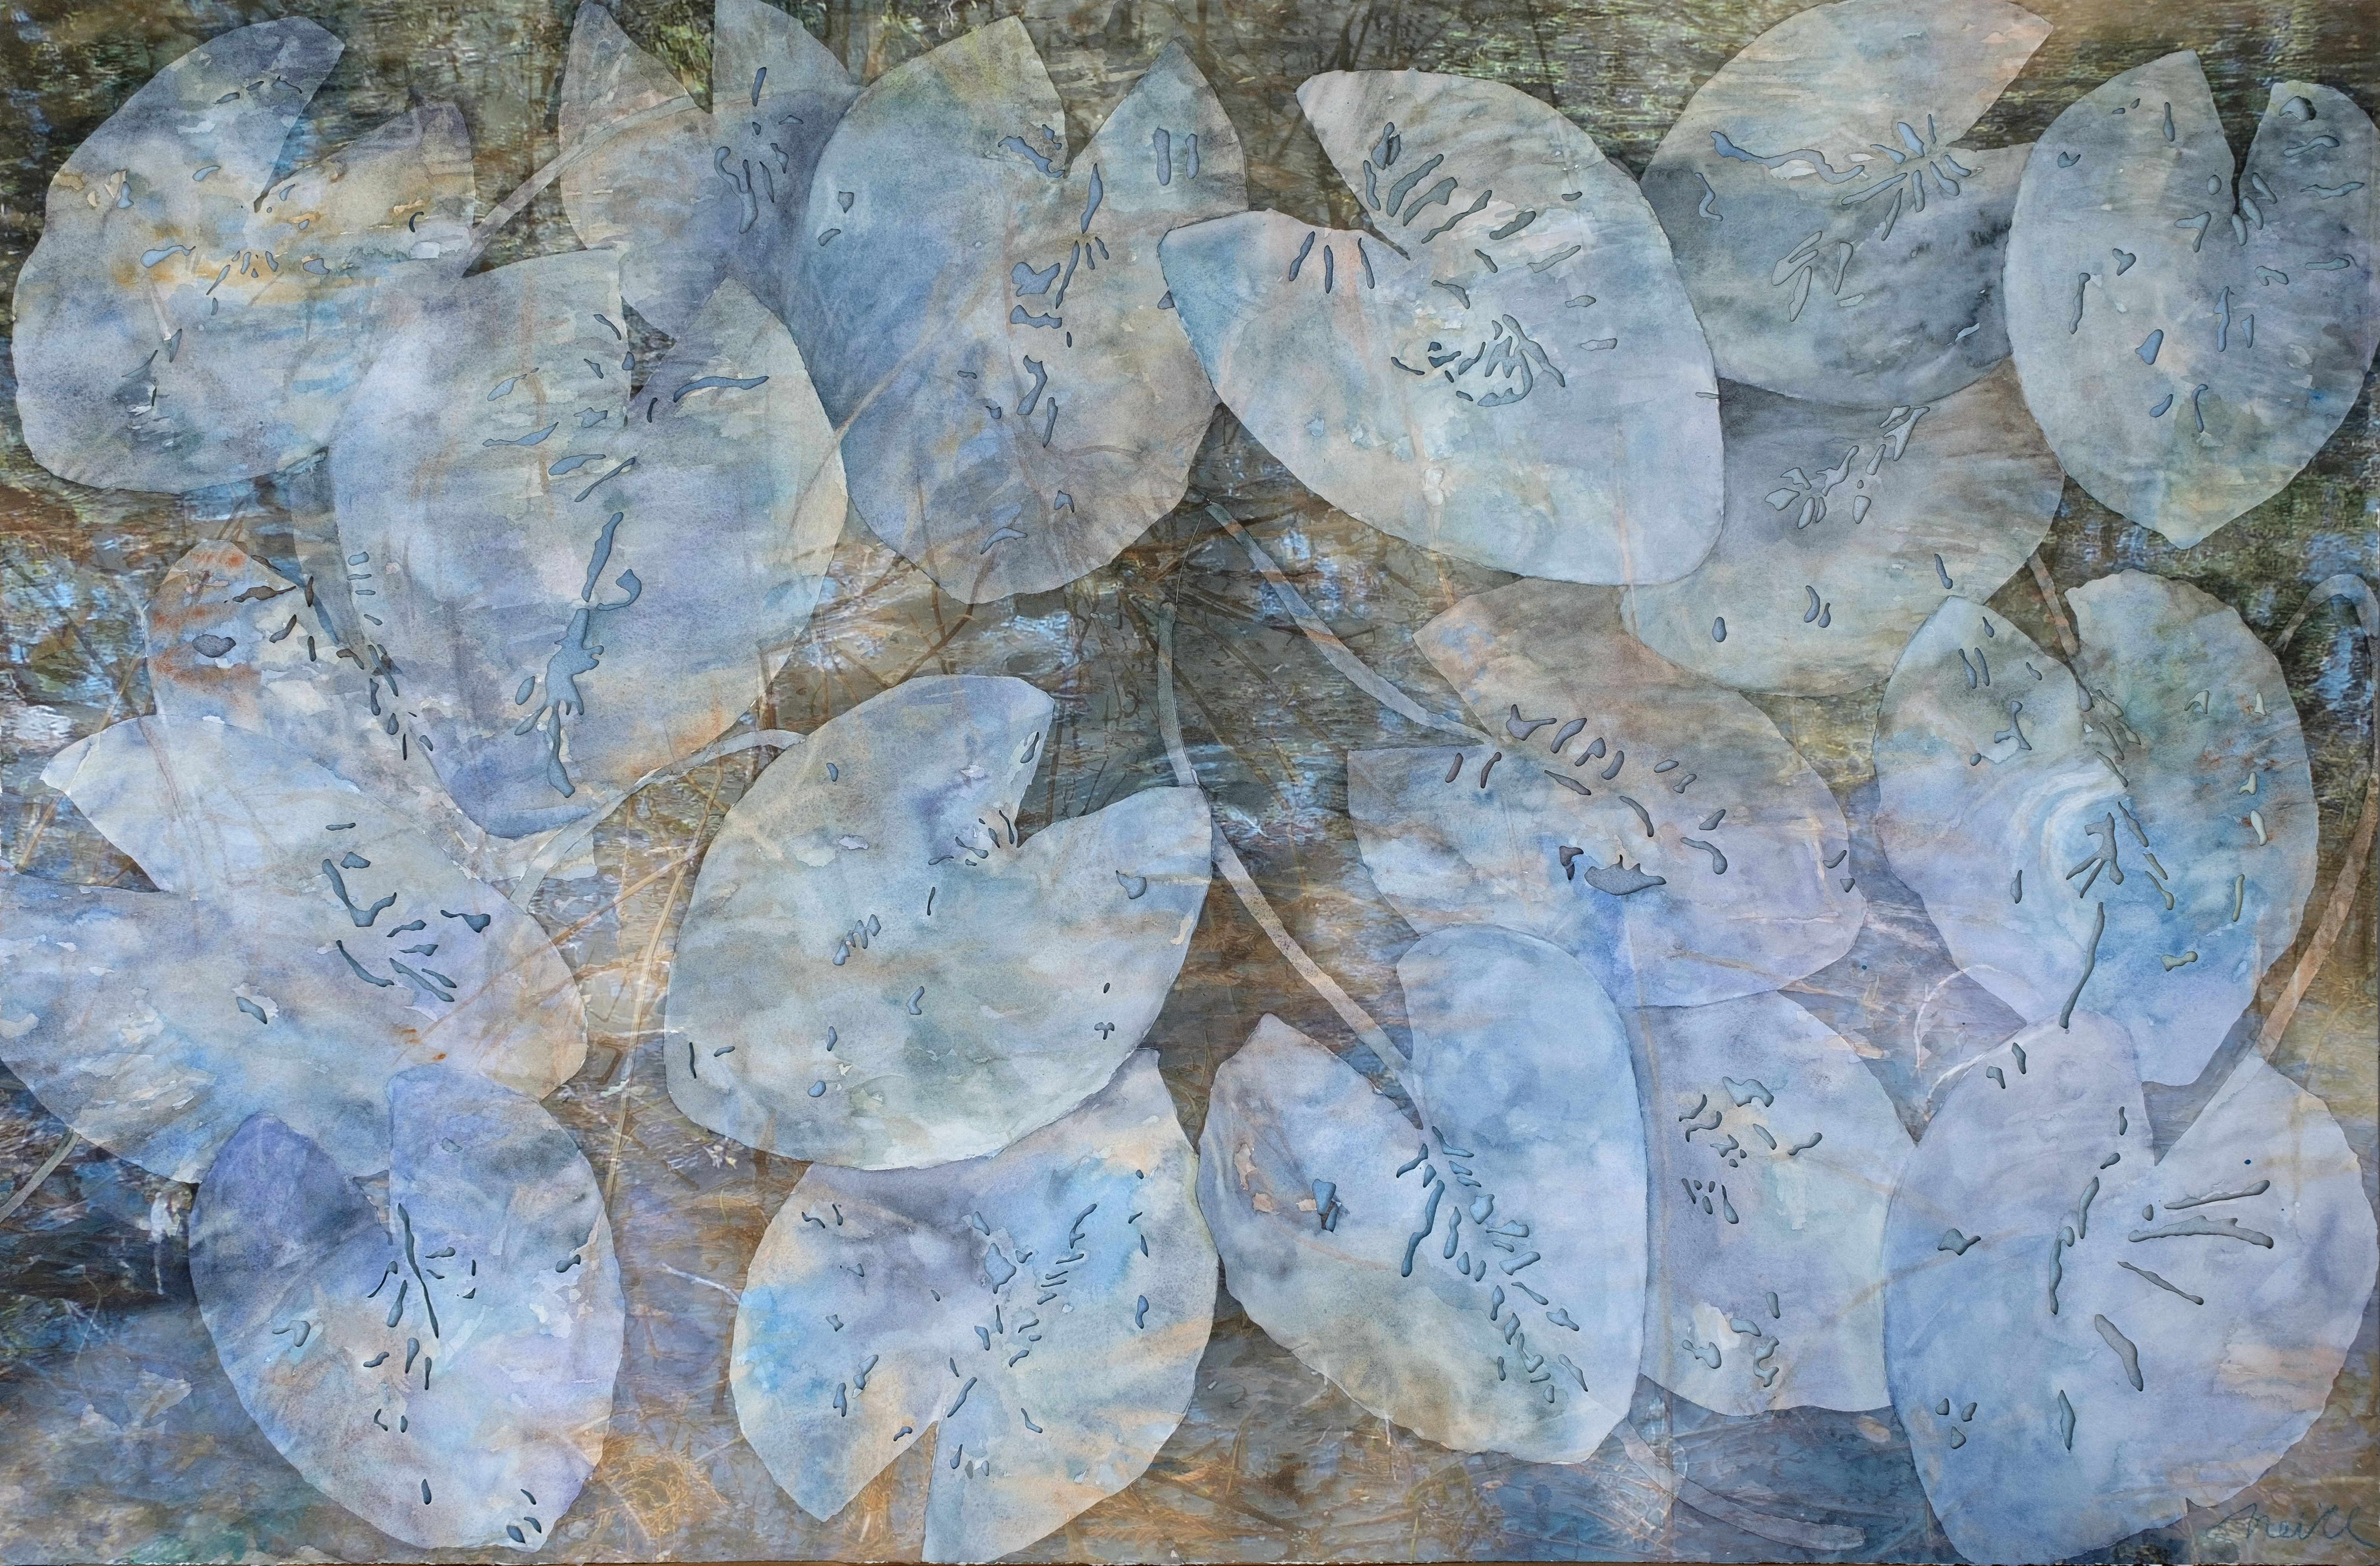 """Blue Carbon, 2019, Watercolor, archival pigment print on laser cut Arches paper, 30"""" x 45""""  Blue carbon is the carbon captured and stored in wetland ecosystems such as mangrove forests, seagrass meadows or intertidal saltmarshes. The ecosystems are valued"""